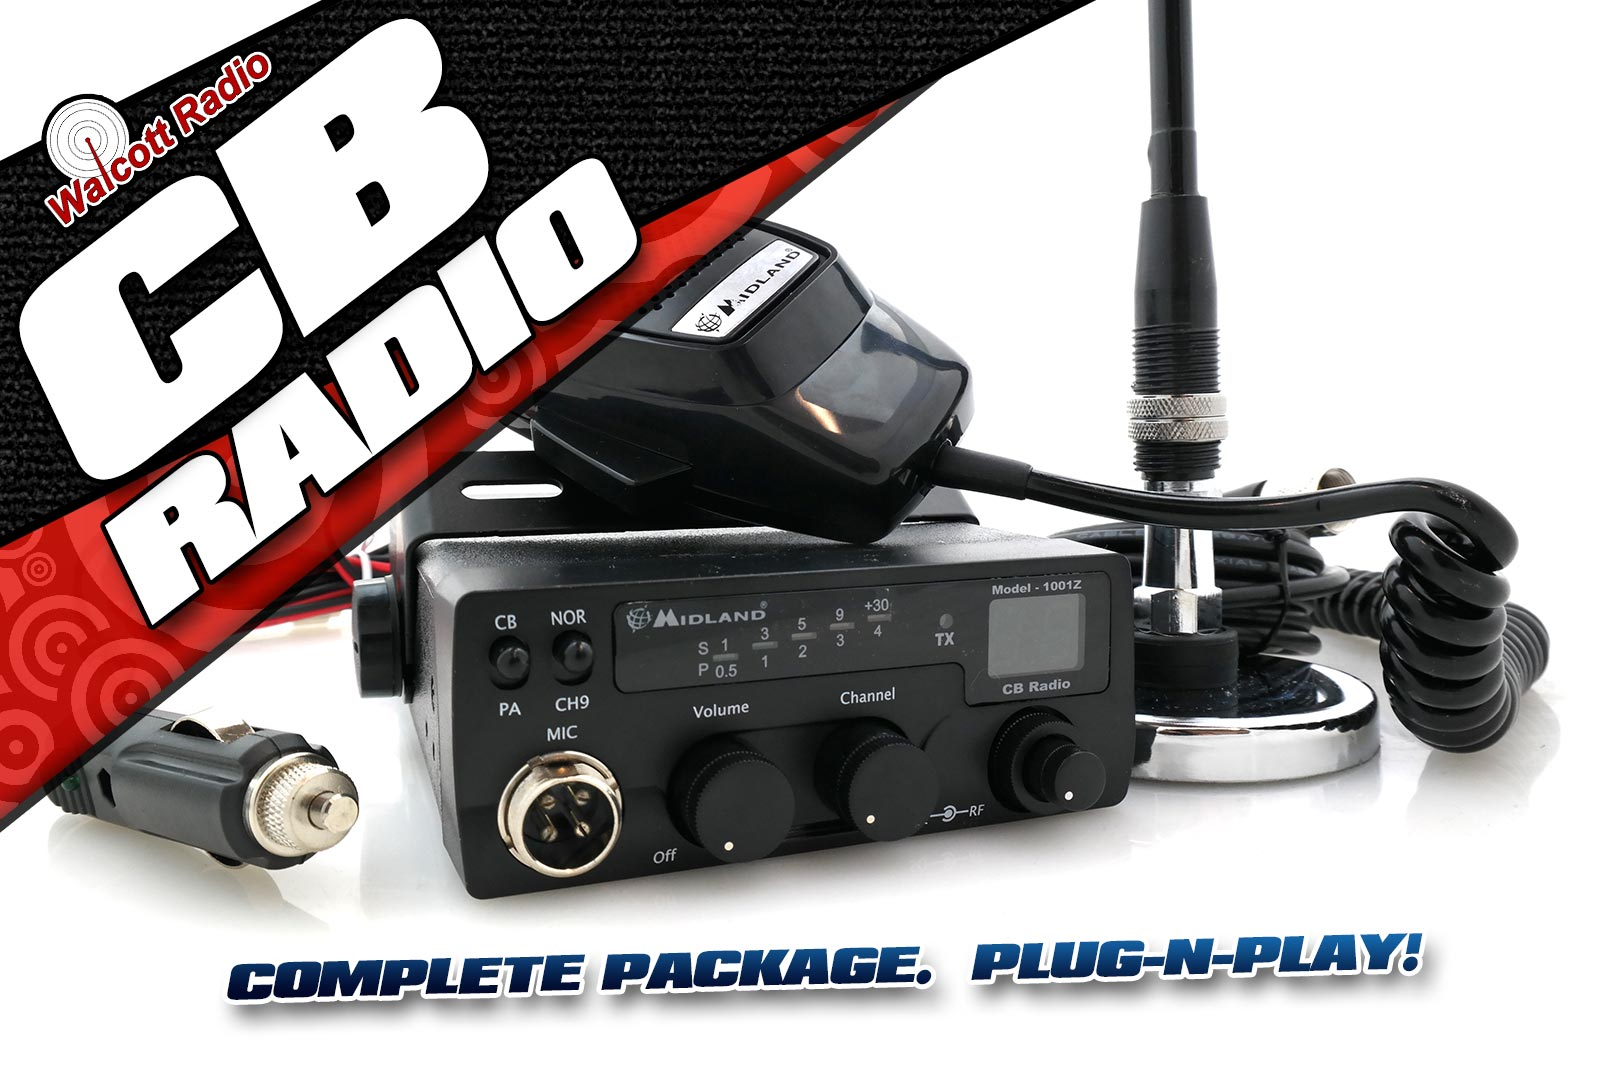 Citizen Band Radios Cb Radio Accessories Walcott 210 Astatic Mic Wiring Diagram Browse Our Selection Of Antennas Microphones Mounts And More Thousands Are In Stock Ready To Ship Now